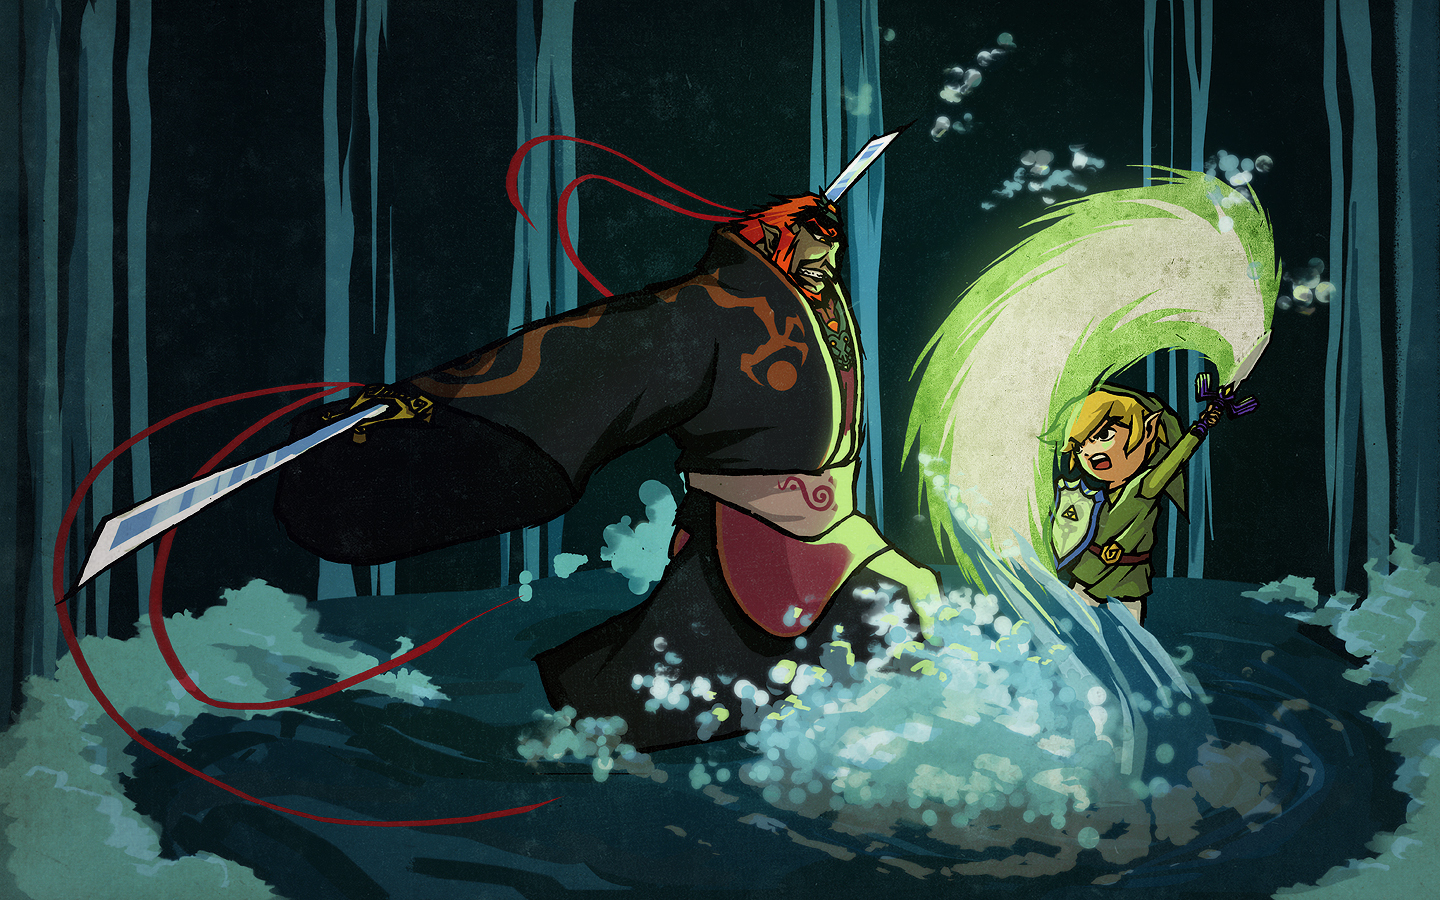 Wind Waker Images Wind Waker Wallpaper Hd Wallpaper And Background